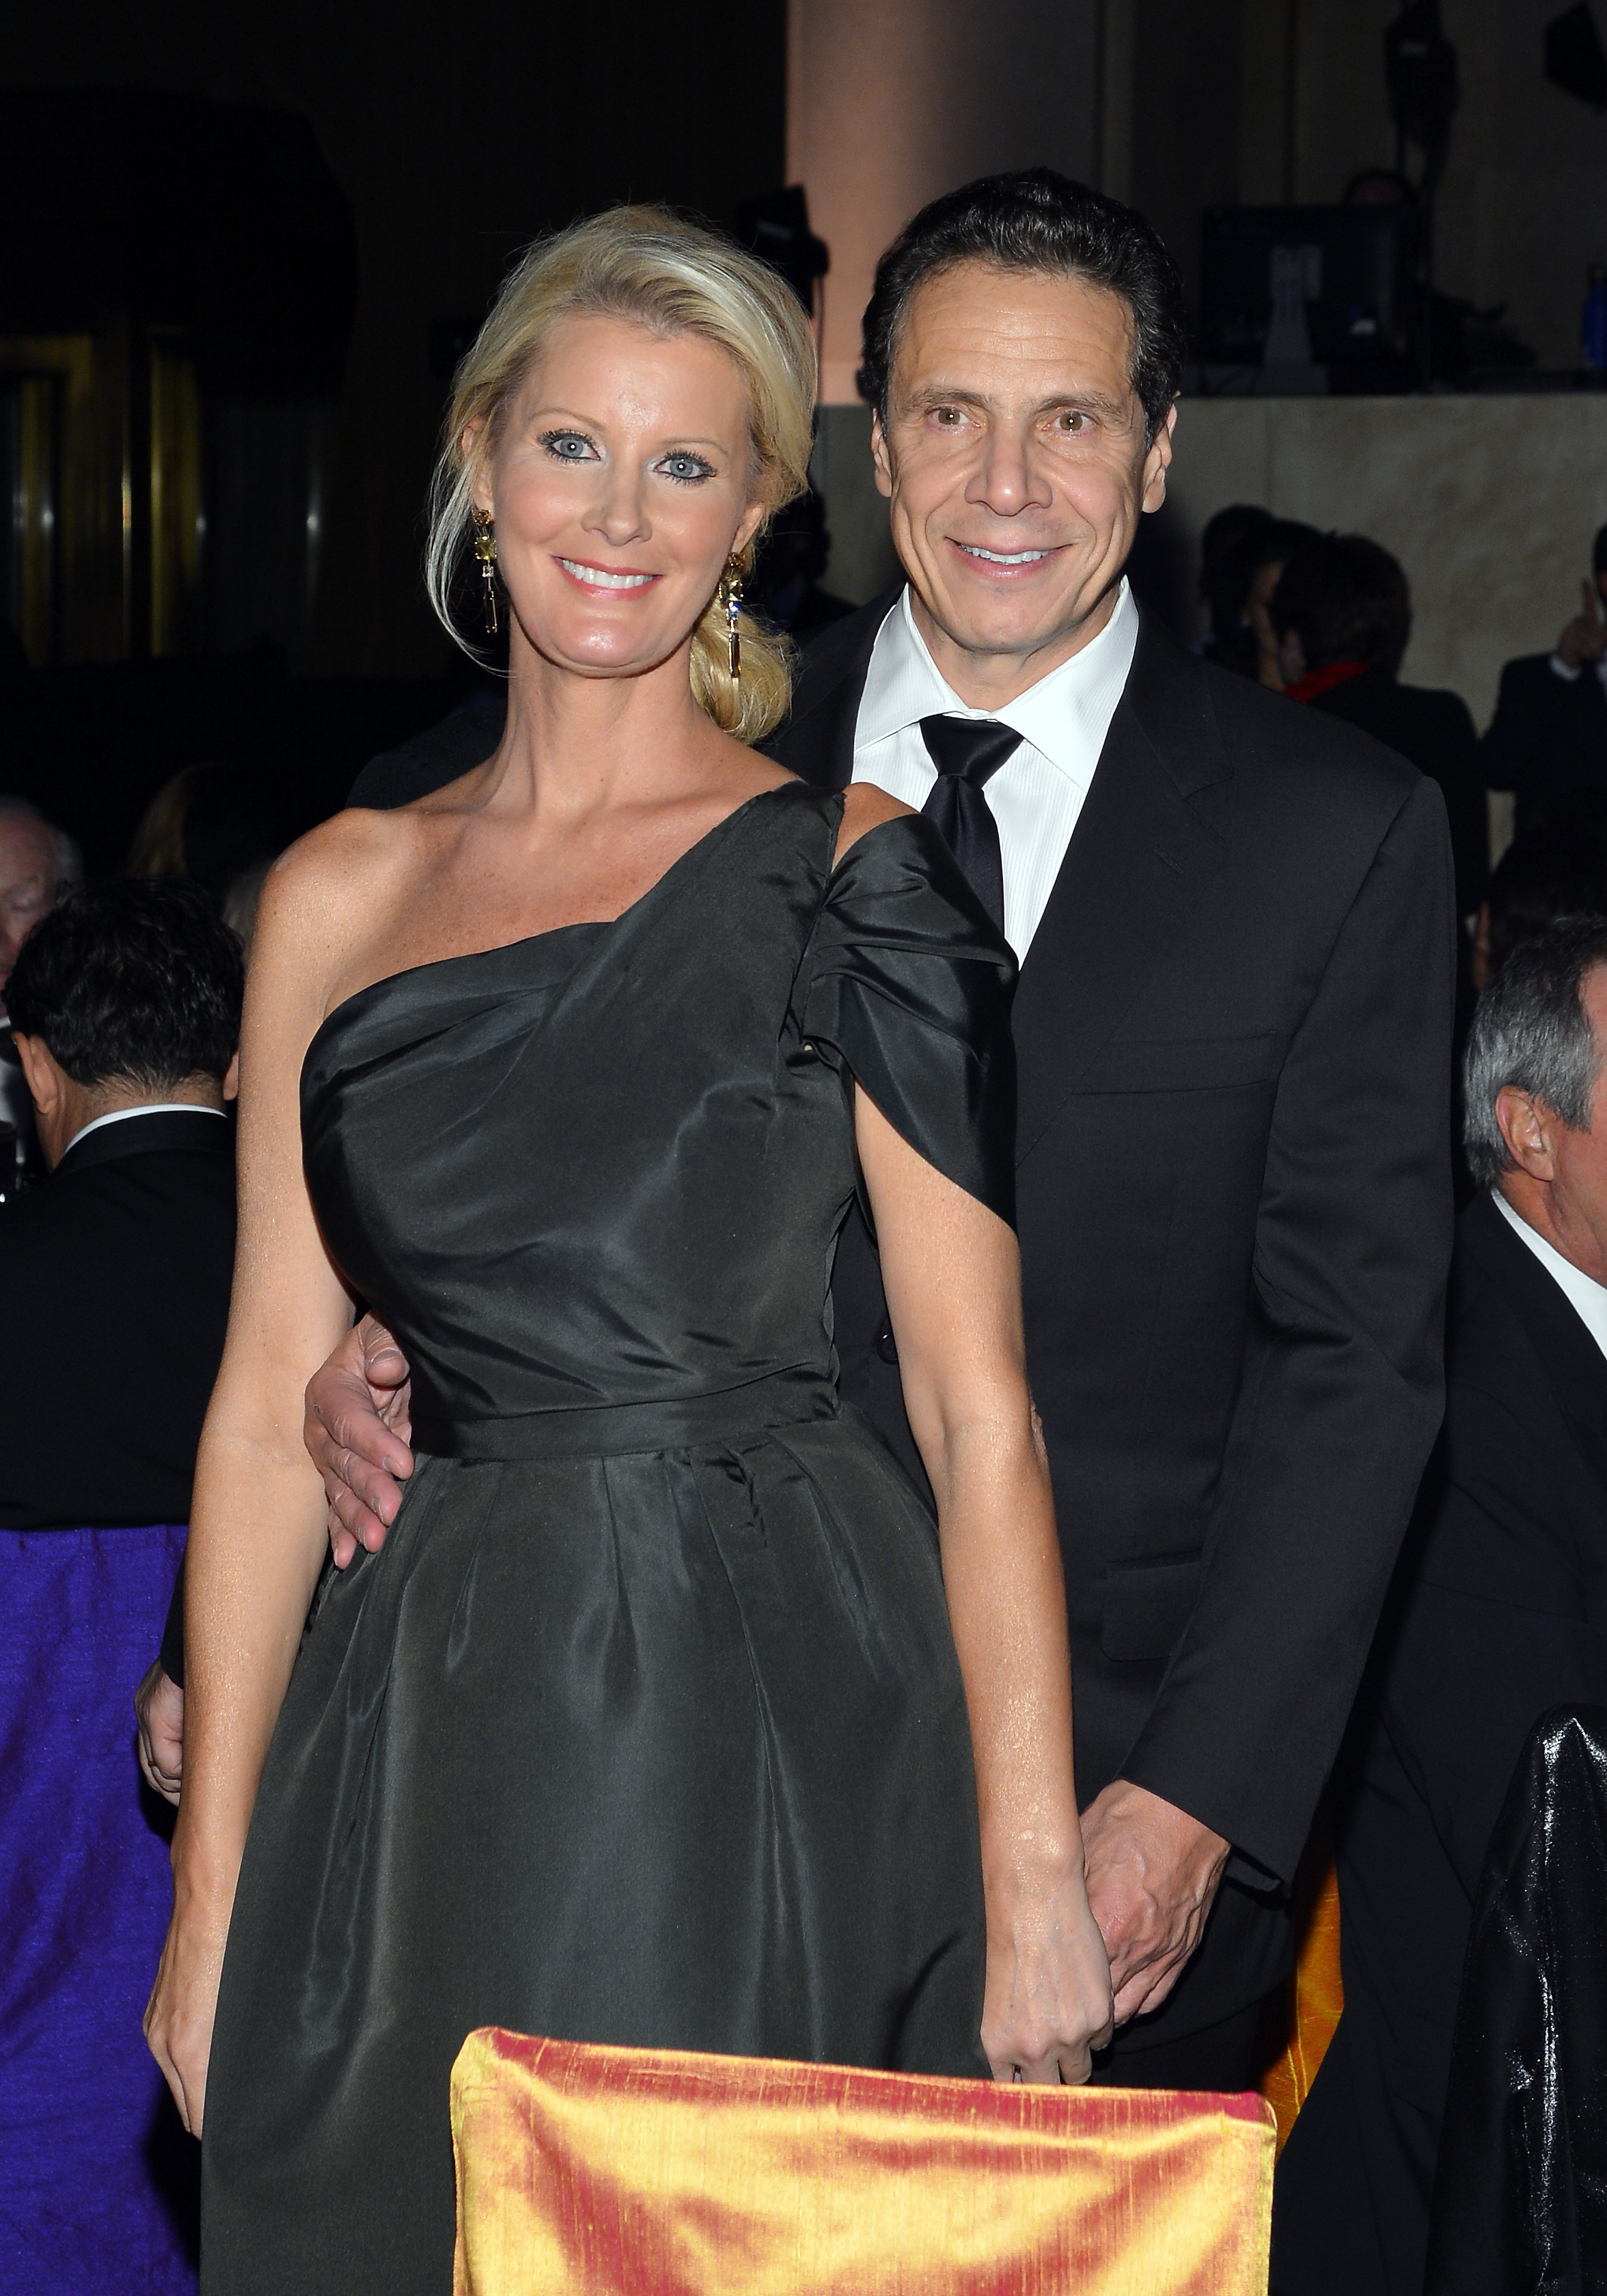 Enduring Vision Award Honoree Sandra Lee and New York Governor Andrew Cuomo attend the Elton John AIDS Foundation's 12th Annual An Enduring Vision Benefit at Cipriani Wall Street on October 15, 2013 in New York City. (Photo by Larry Busacca/Getty Images)